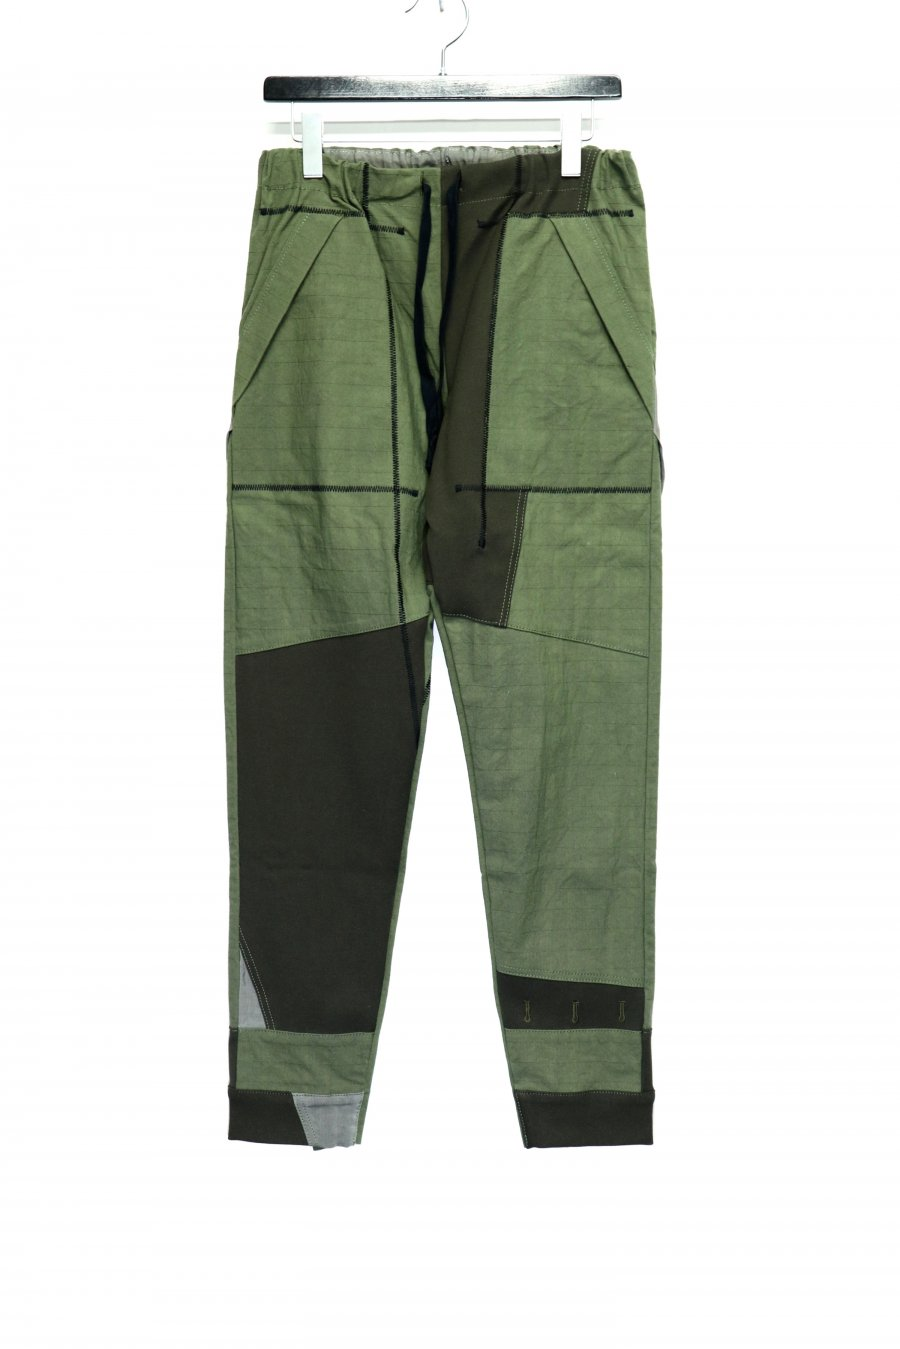 LEH  DACHWORK TAPERED PANTS<img class='new_mark_img2' src='https://img.shop-pro.jp/img/new/icons15.gif' style='border:none;display:inline;margin:0px;padding:0px;width:auto;' />